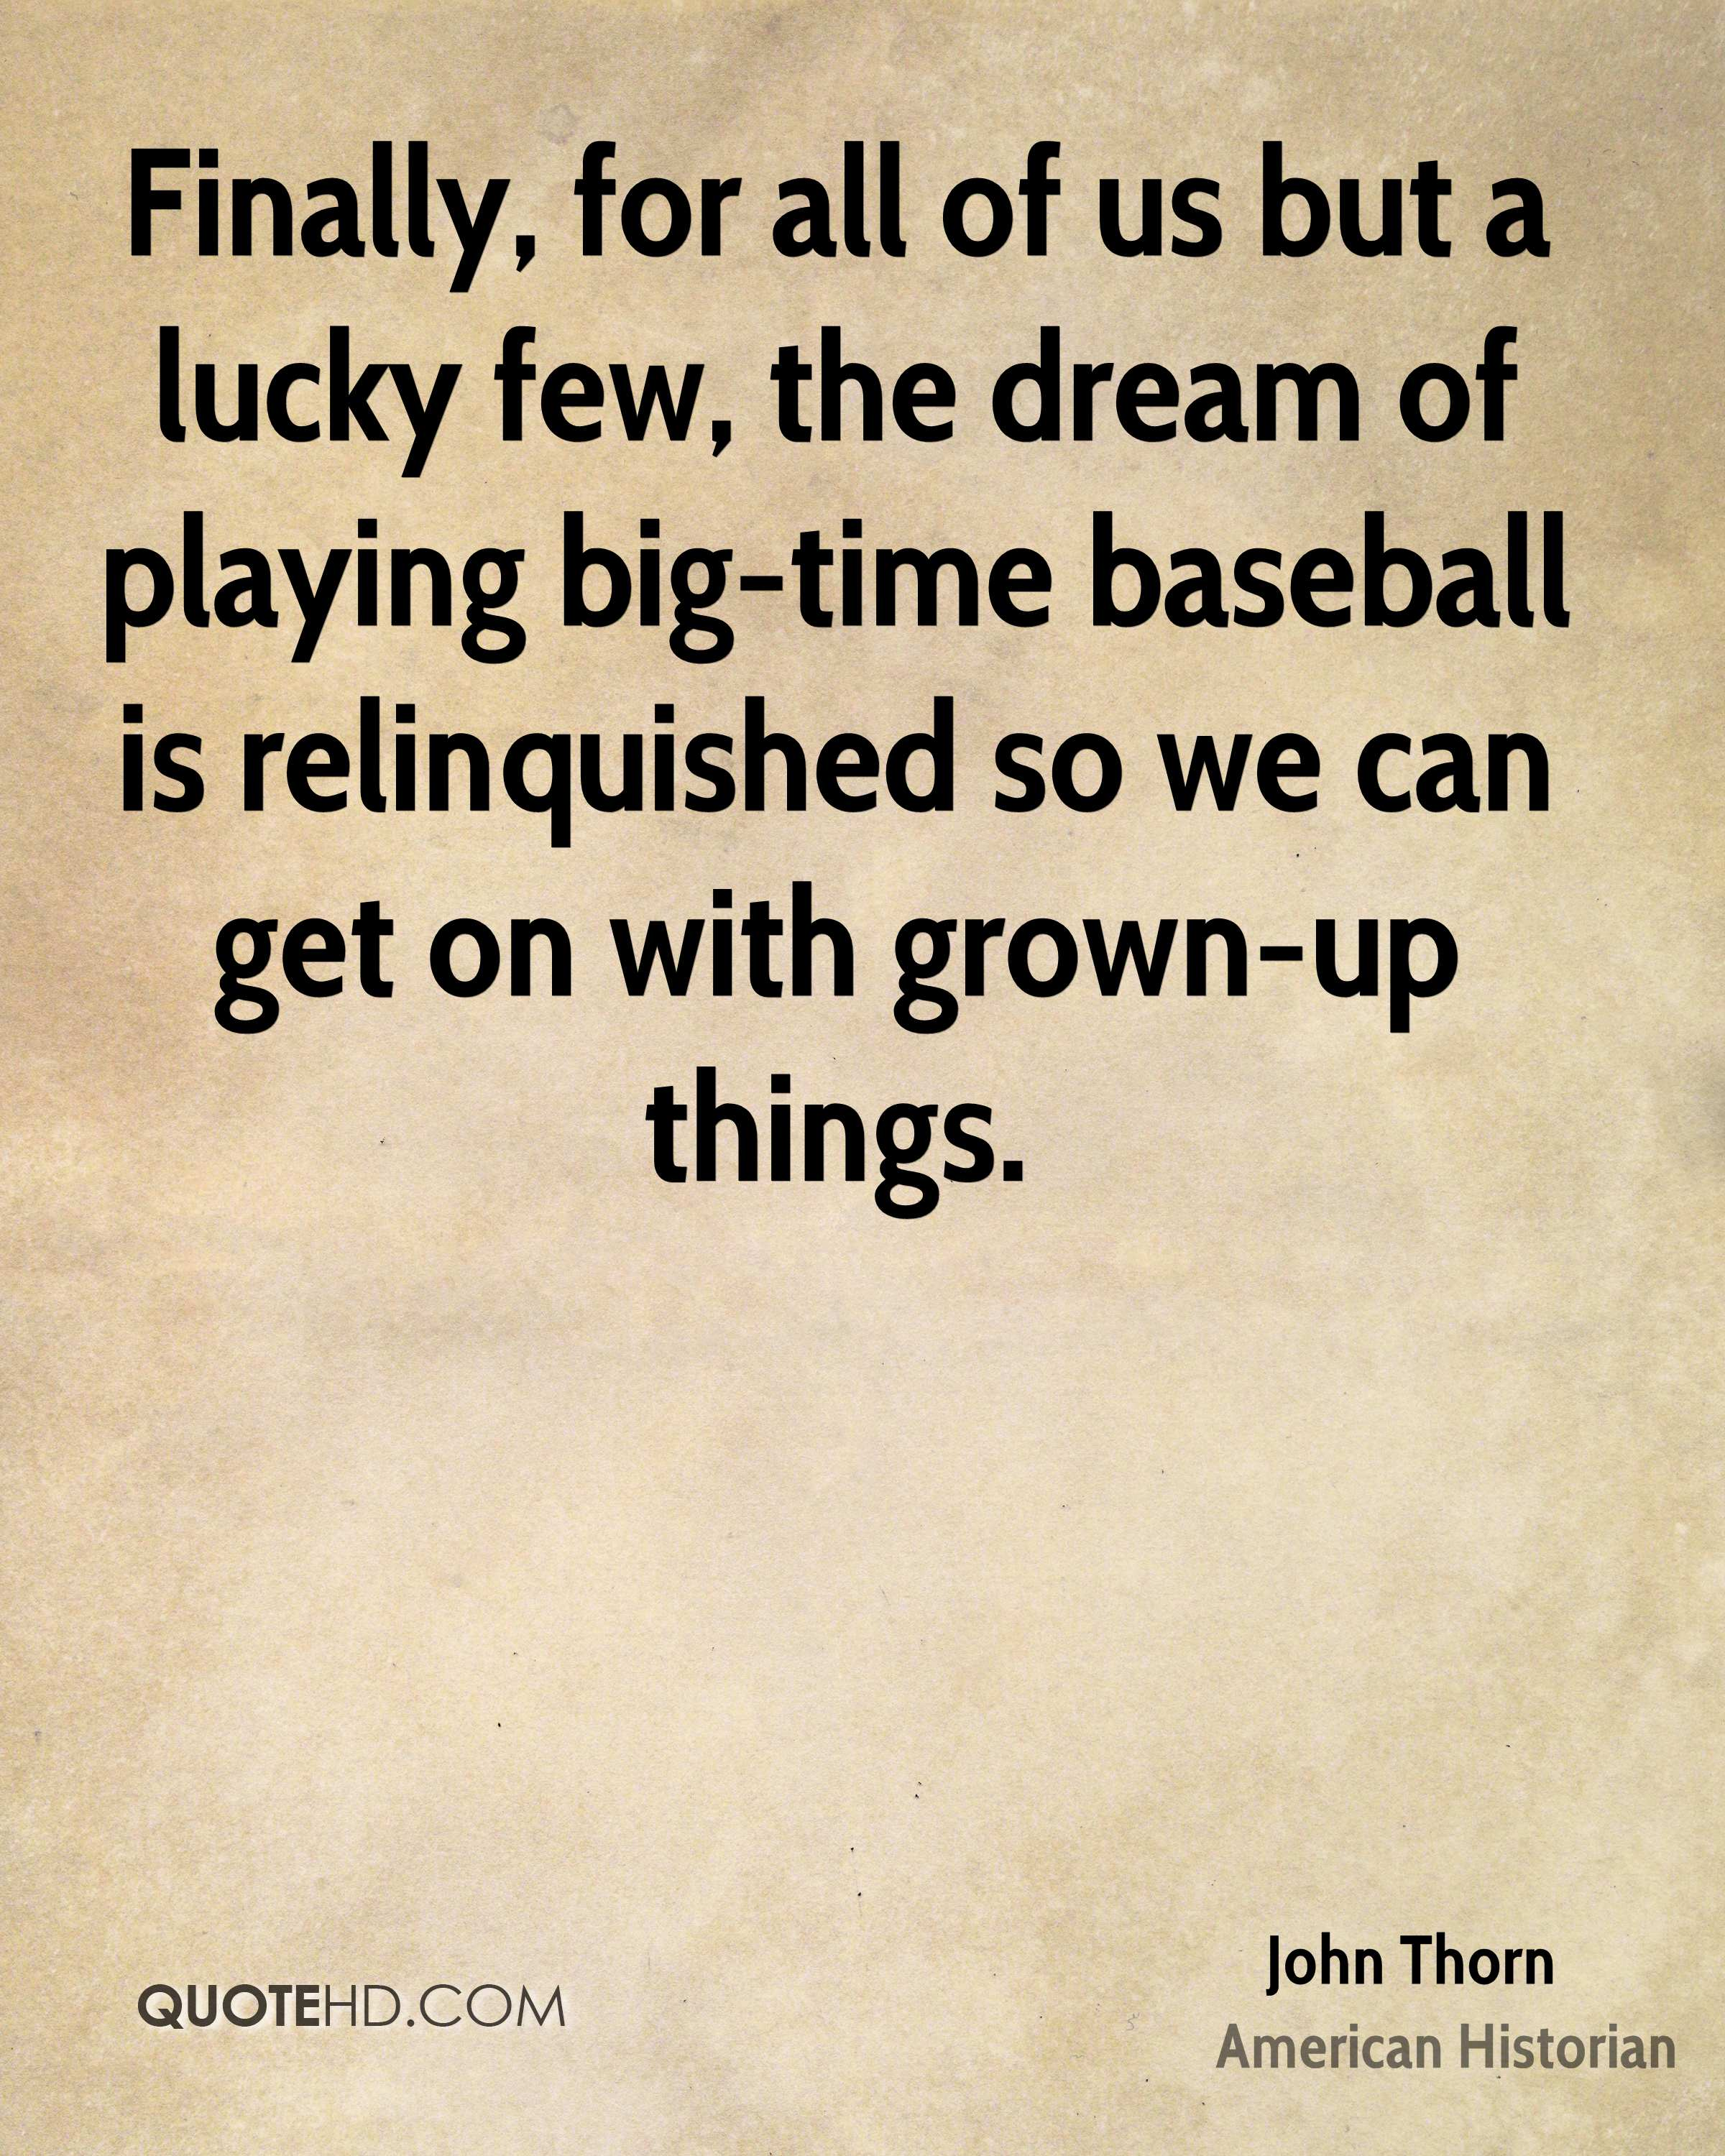 Finally, for all of us but a lucky few, the dream of playing big-time baseball is relinquished so we can get on with grown-up things.